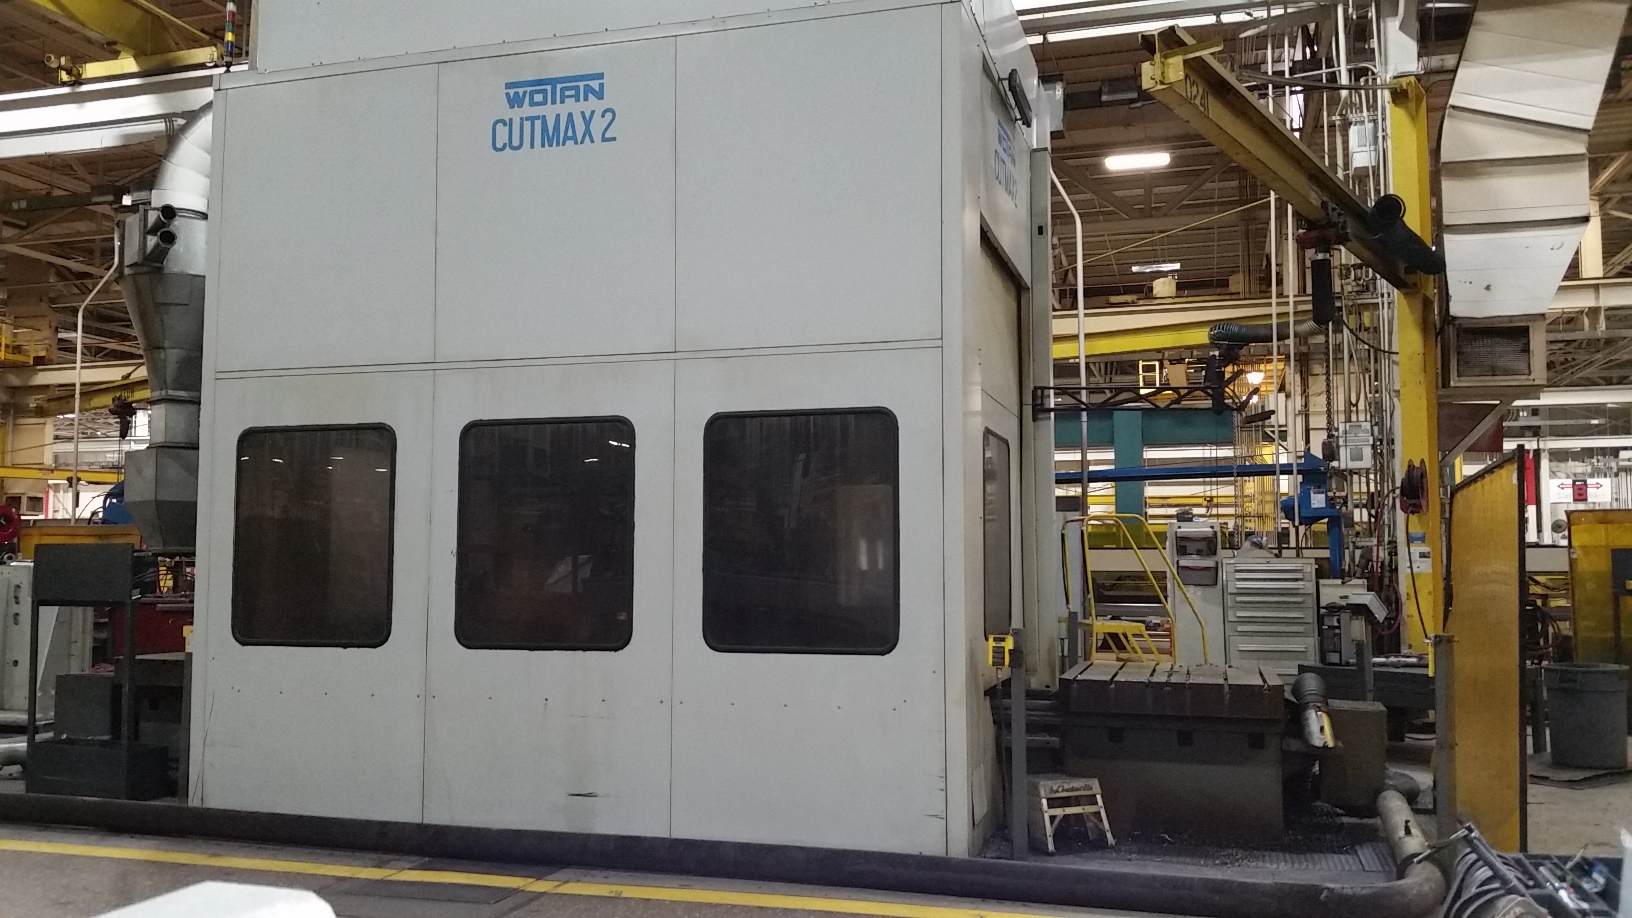 """4.75"""" WOTAN CUTMAX II, DUAL 55 X 63 PALLETS, 71 LONG. X 67 VERT. X 53 IN/OUT X 24 QUILL, 240 ATC, THRU SPINDLE COOLANT, 4 TH AXIS, 3000 RPM, 41 HP, SIEMENS 840C CONTROL, 1996"""